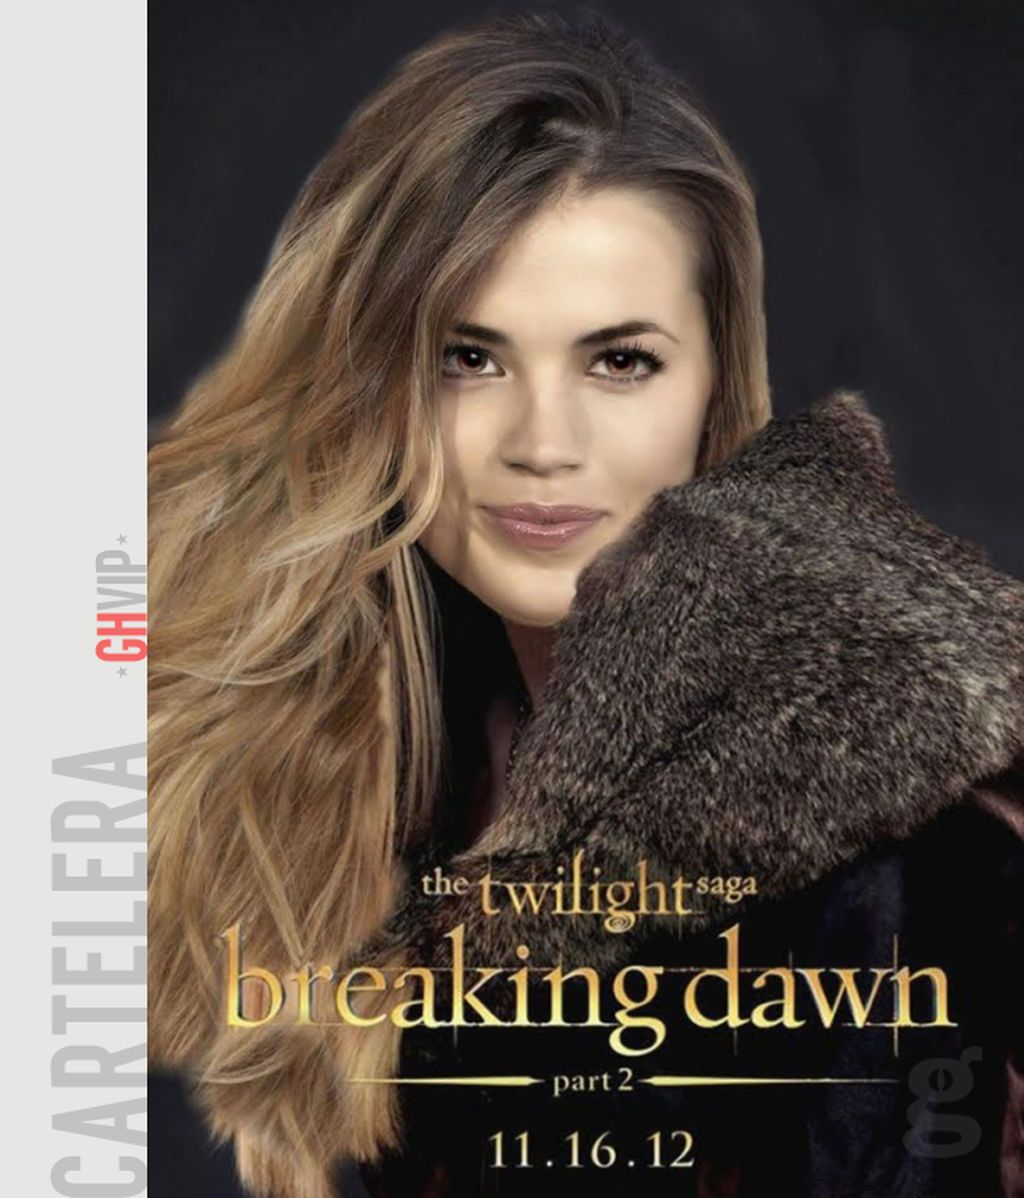 Cartelera: Breaking dawn